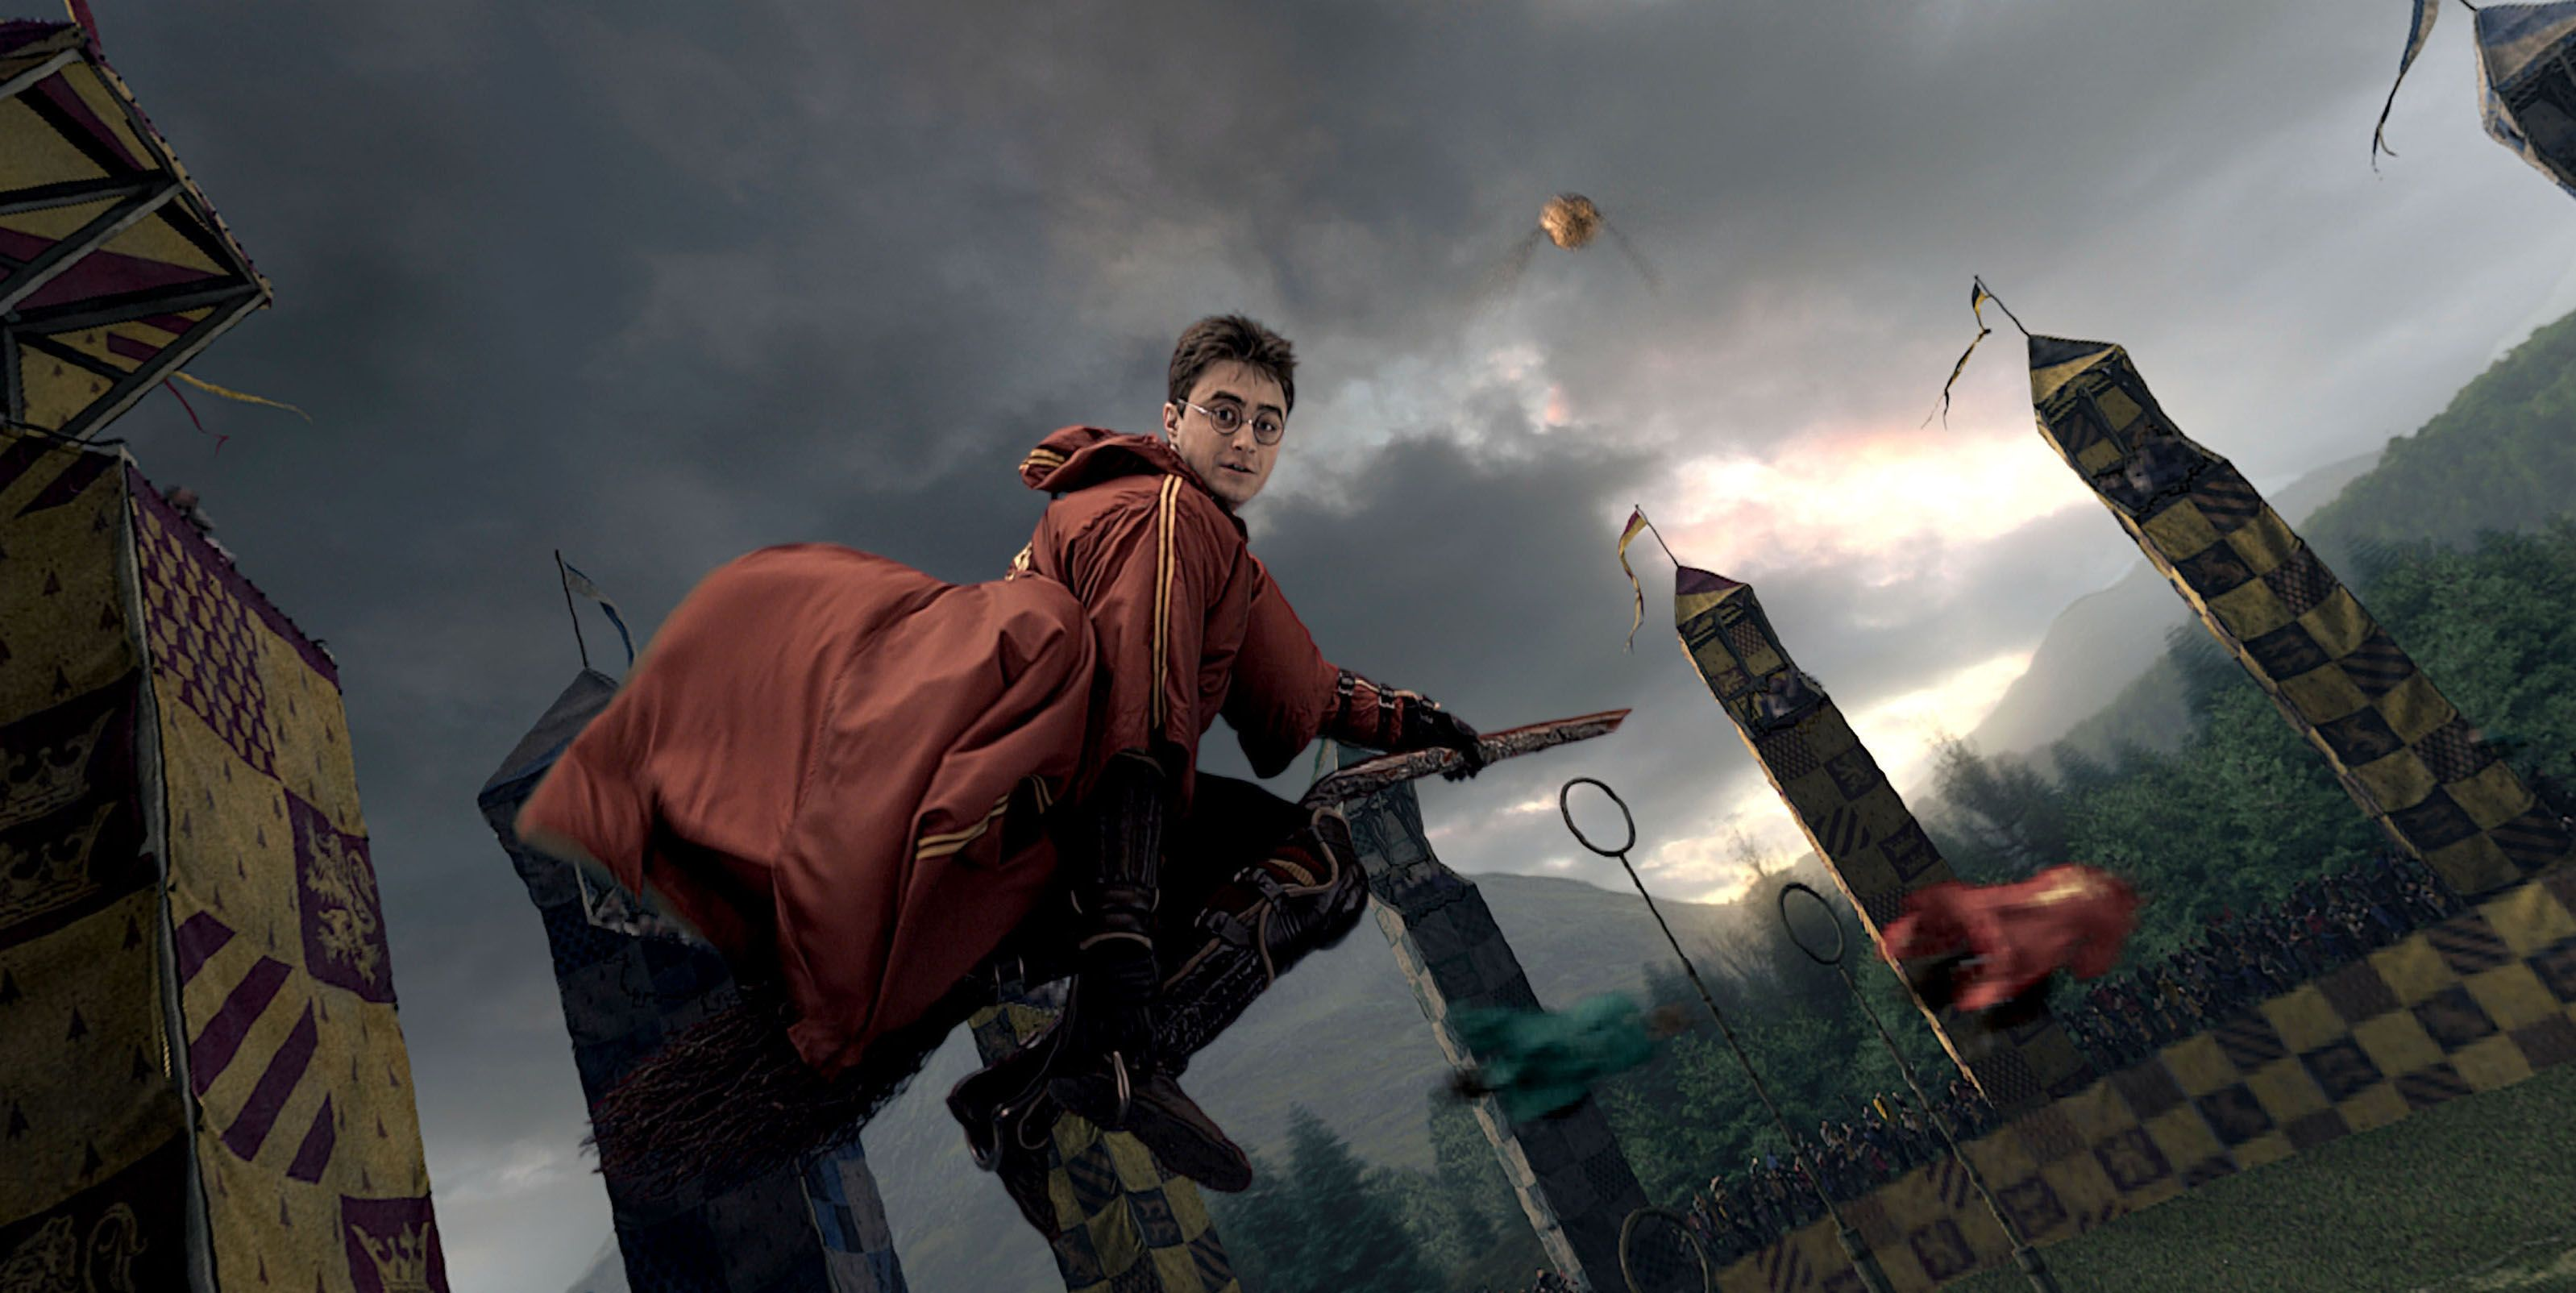 Harry Potter And The Forbidden Journey 2010 Draco What Fictional Team Were You Meant To Play For Harry Potter Quidditch Harry Potter Questions Harry Potter Ride